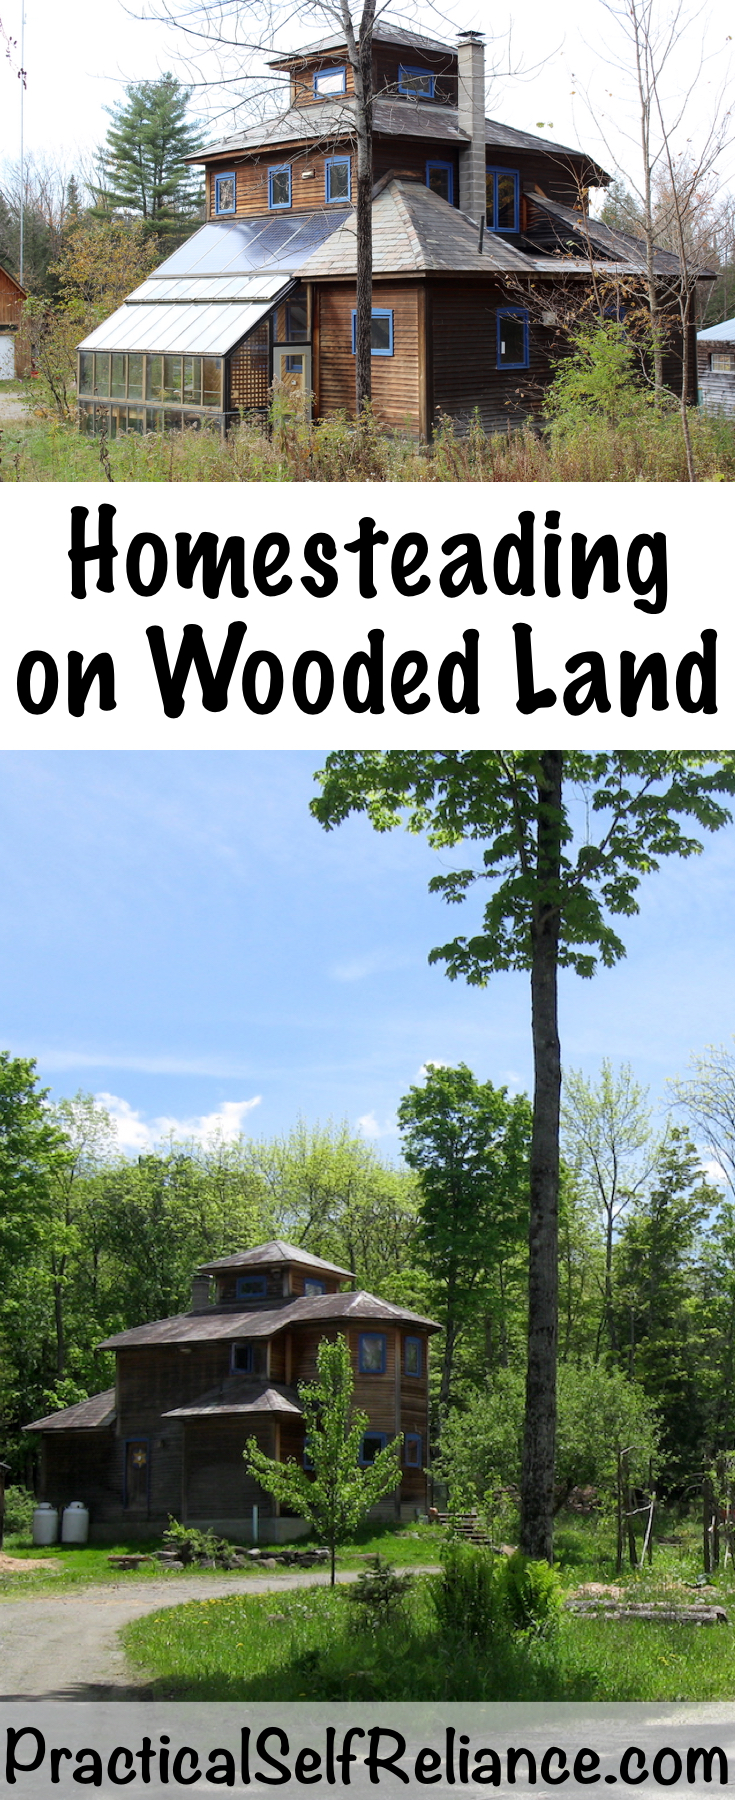 Homesteading On Wooded Land